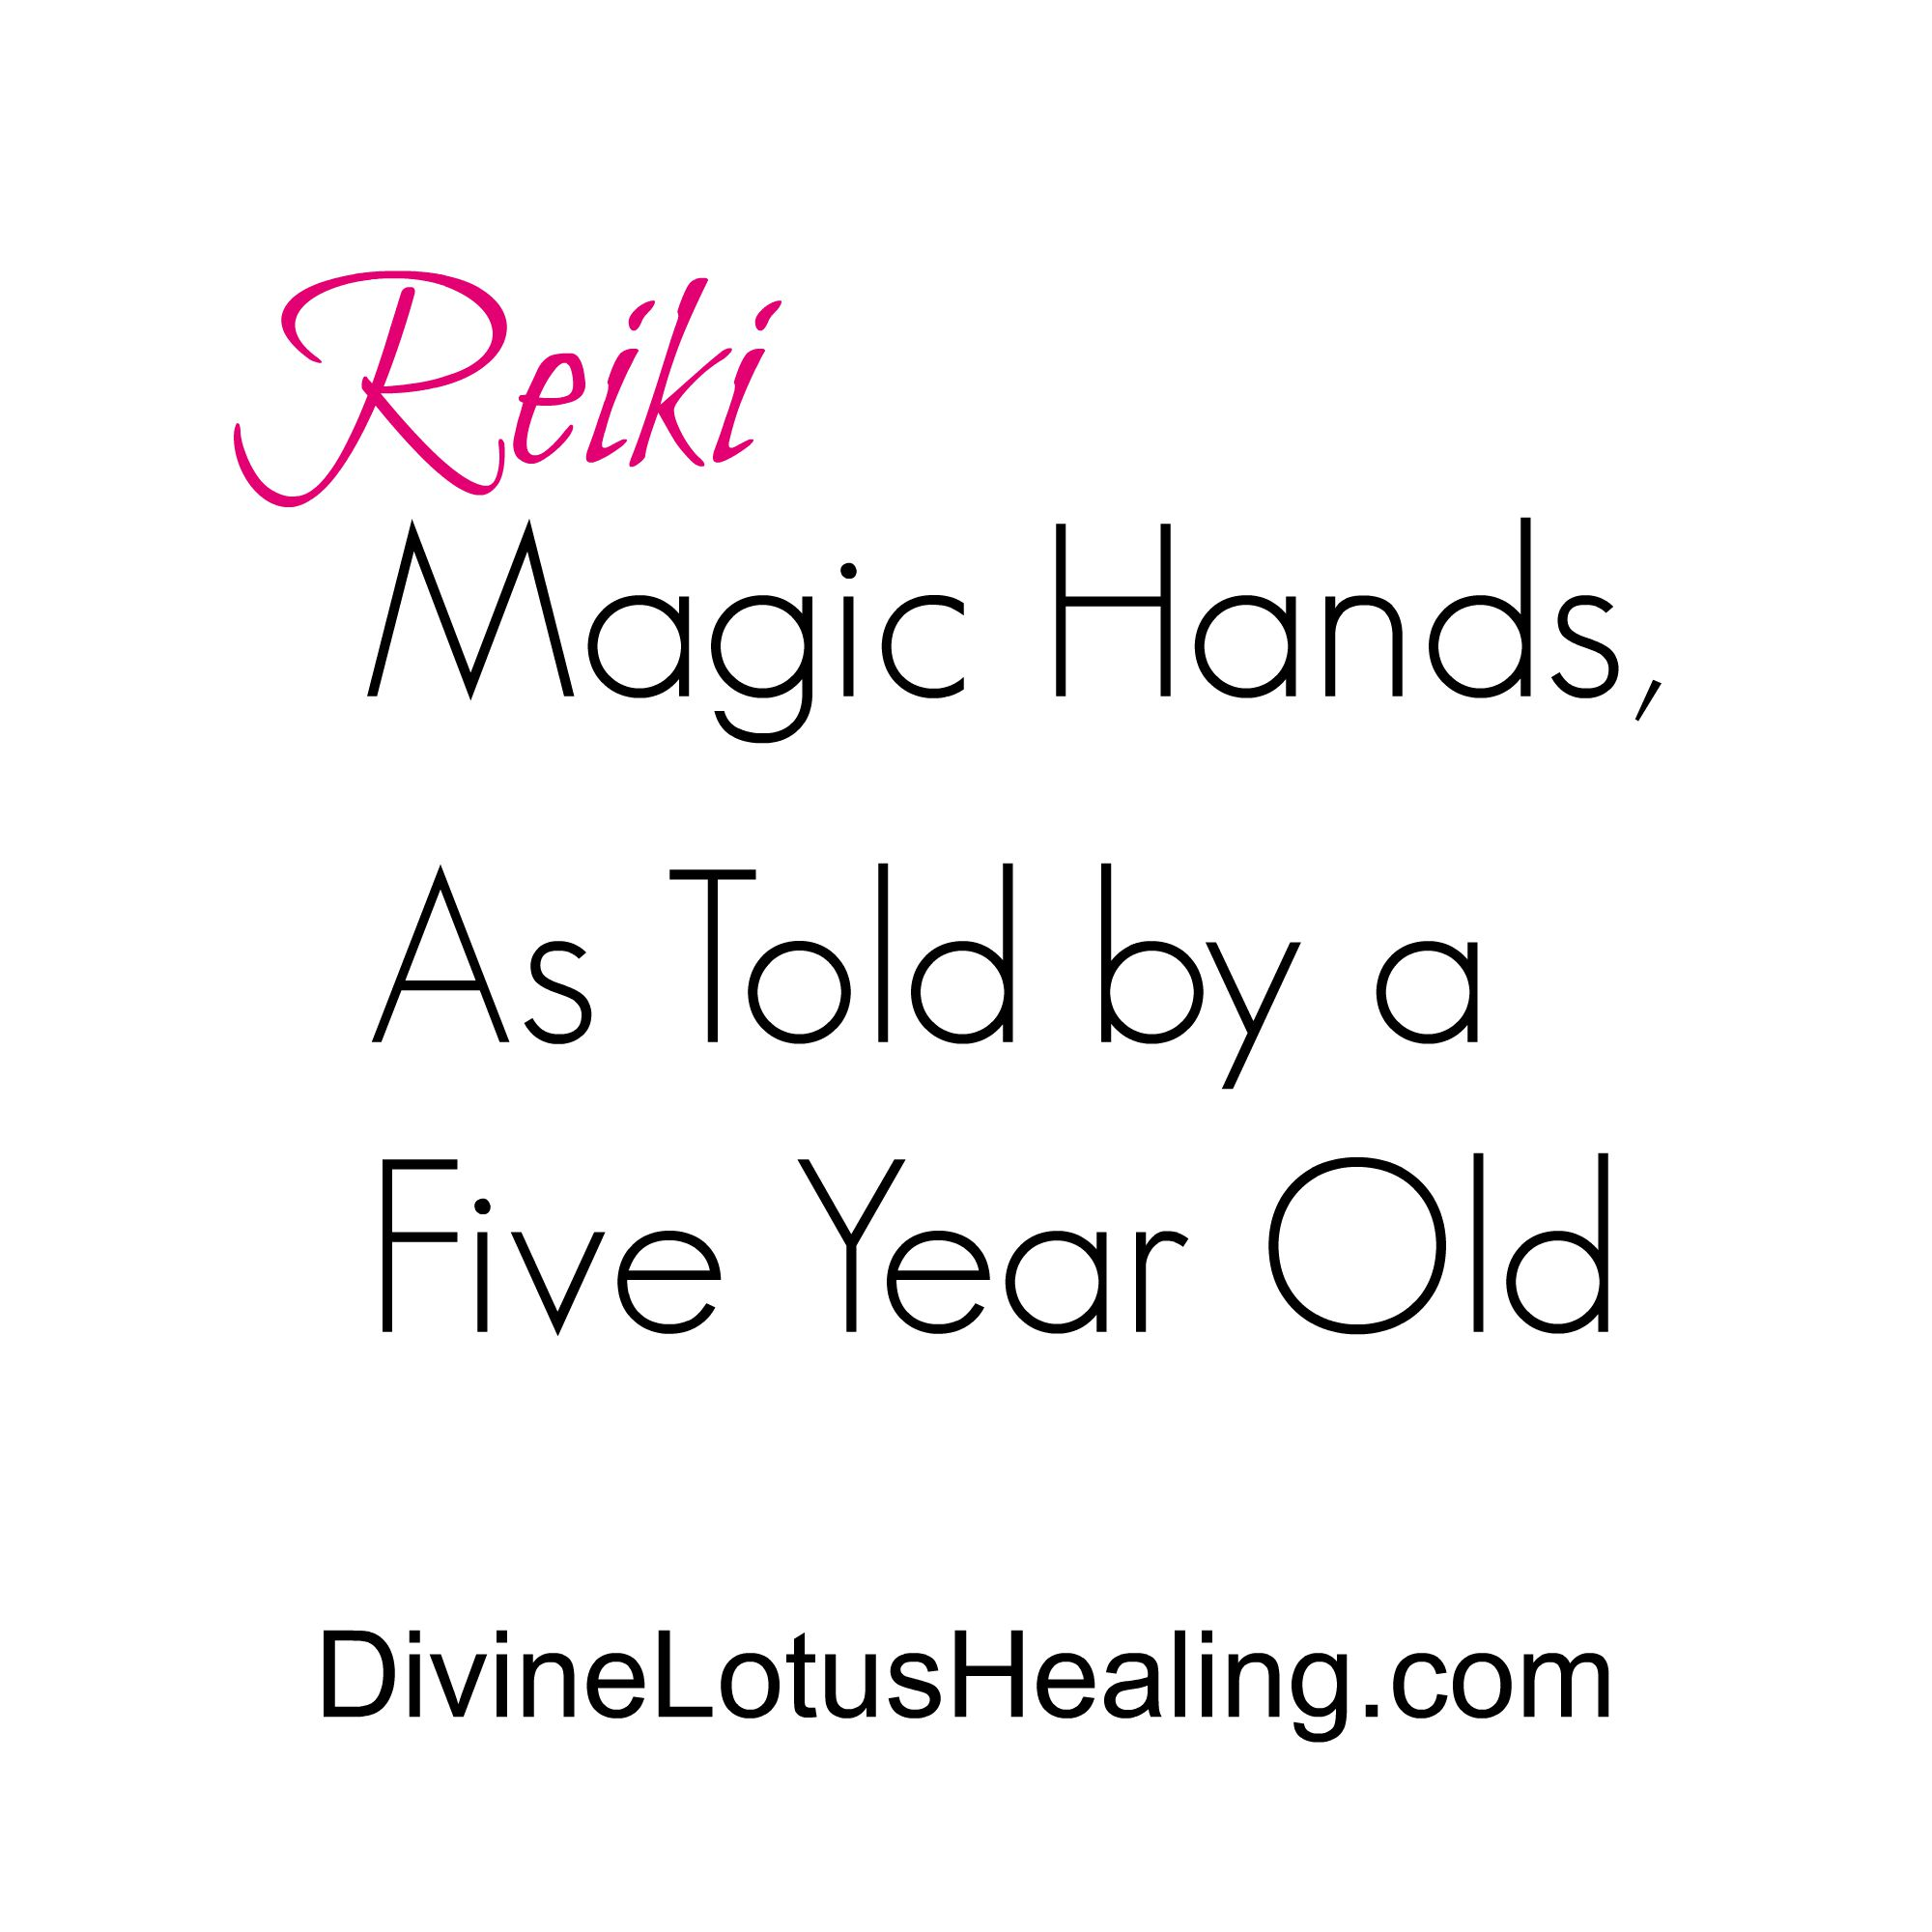 Divine Lotus Healing | Reiki Magic Hands As Told by a Five Year Old